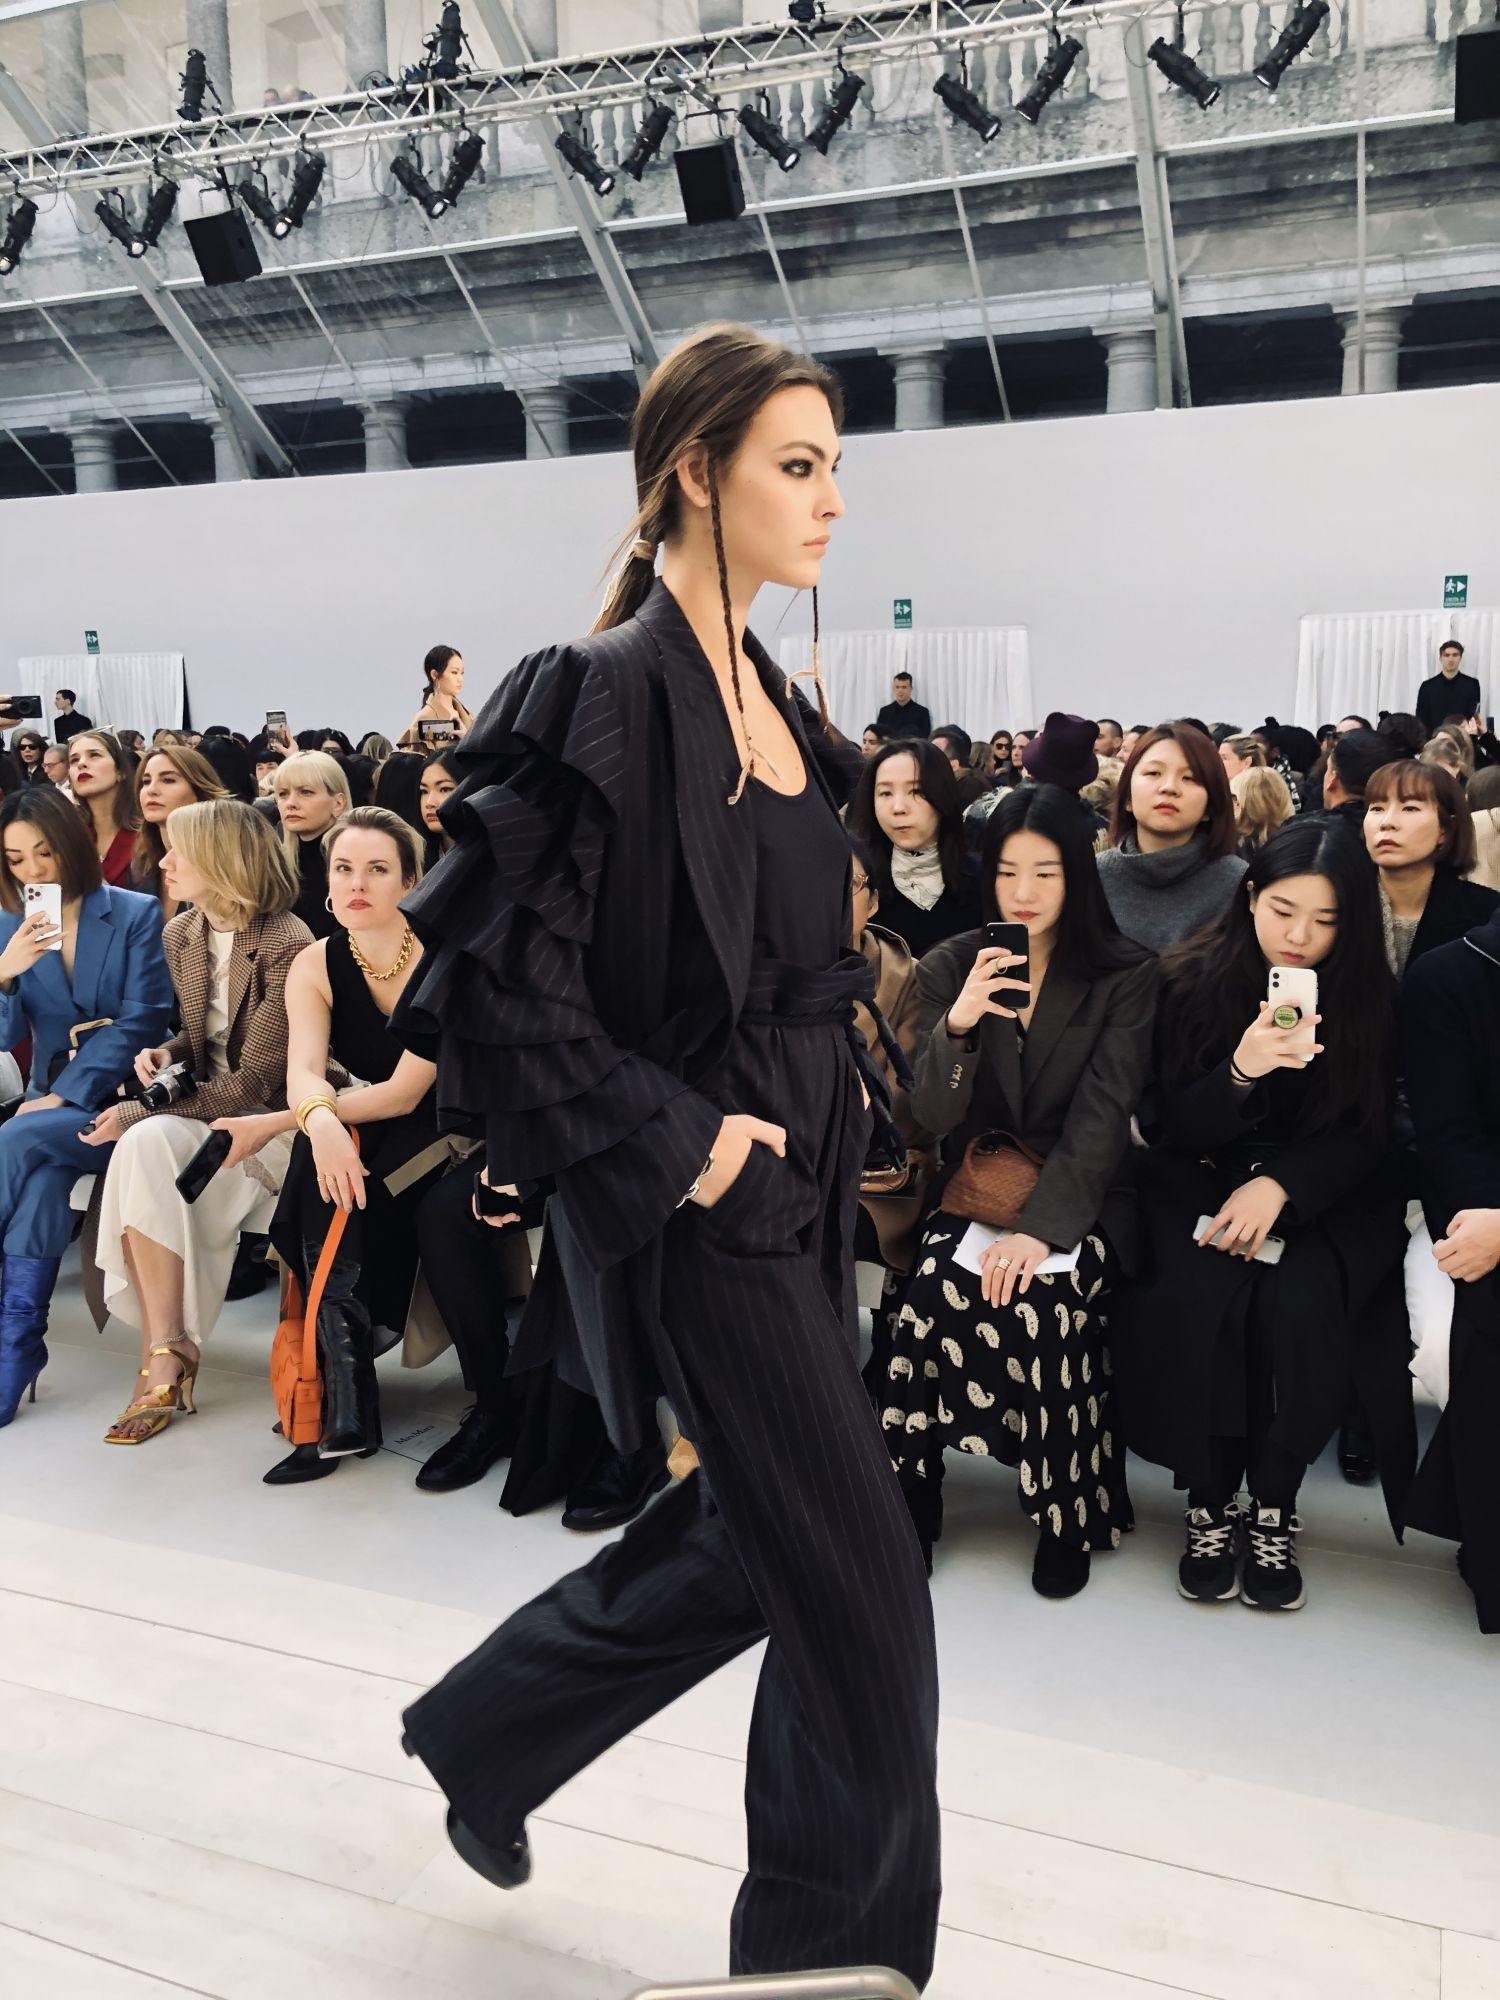 Milan Fashion Week Fall/Winter 2020: Day 2 Highlights